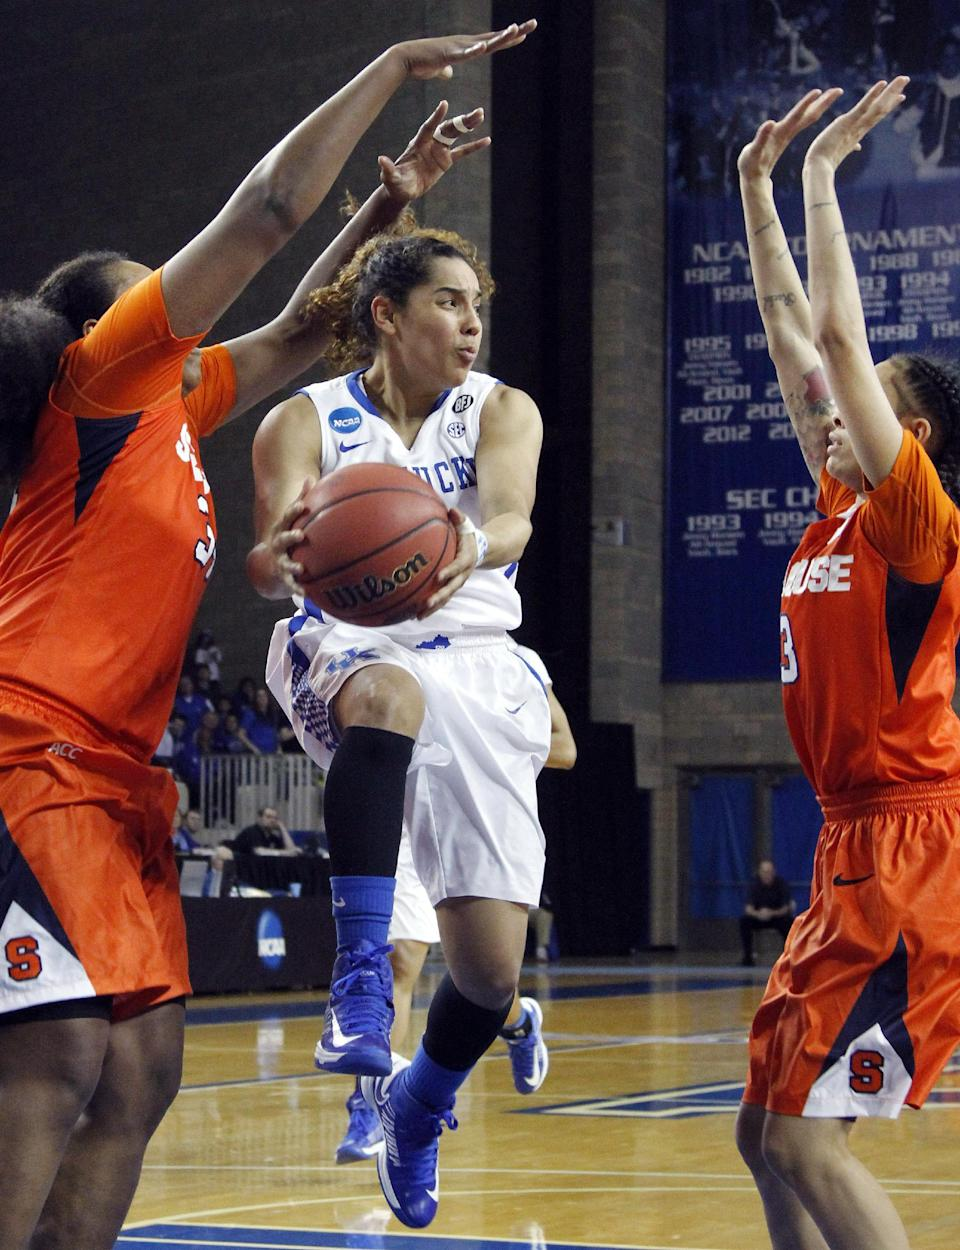 Kentucky's Jennifer O'Neill, middle, looks for an open teammate between Syracuse defenders Shakeya Leary, left, and Rachel Coffey during the second half of a second-round game in the NCAA women's college basketball tournament in Lexington, Ky., Monday, March 24, 2014. Kentucky won 64-59. (AP Photo/James Crisp)